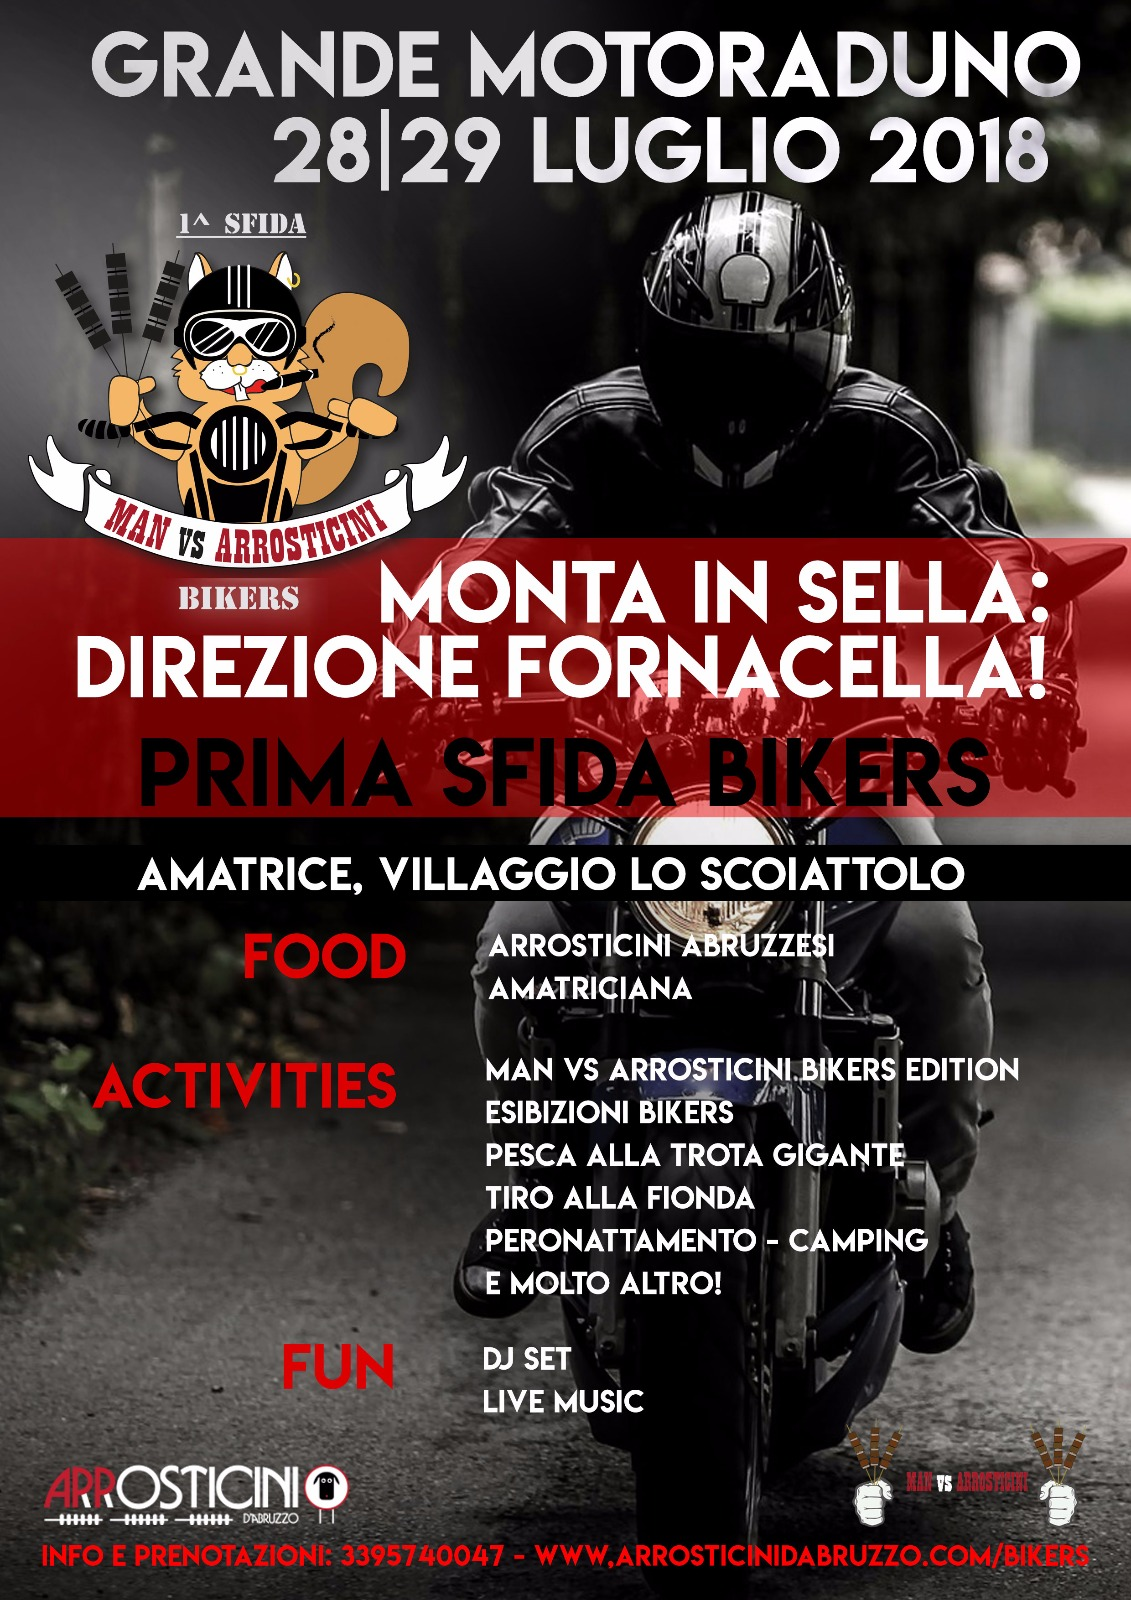 moto raduno locandina Man vs Arrosticini bikers Amatrice 2018